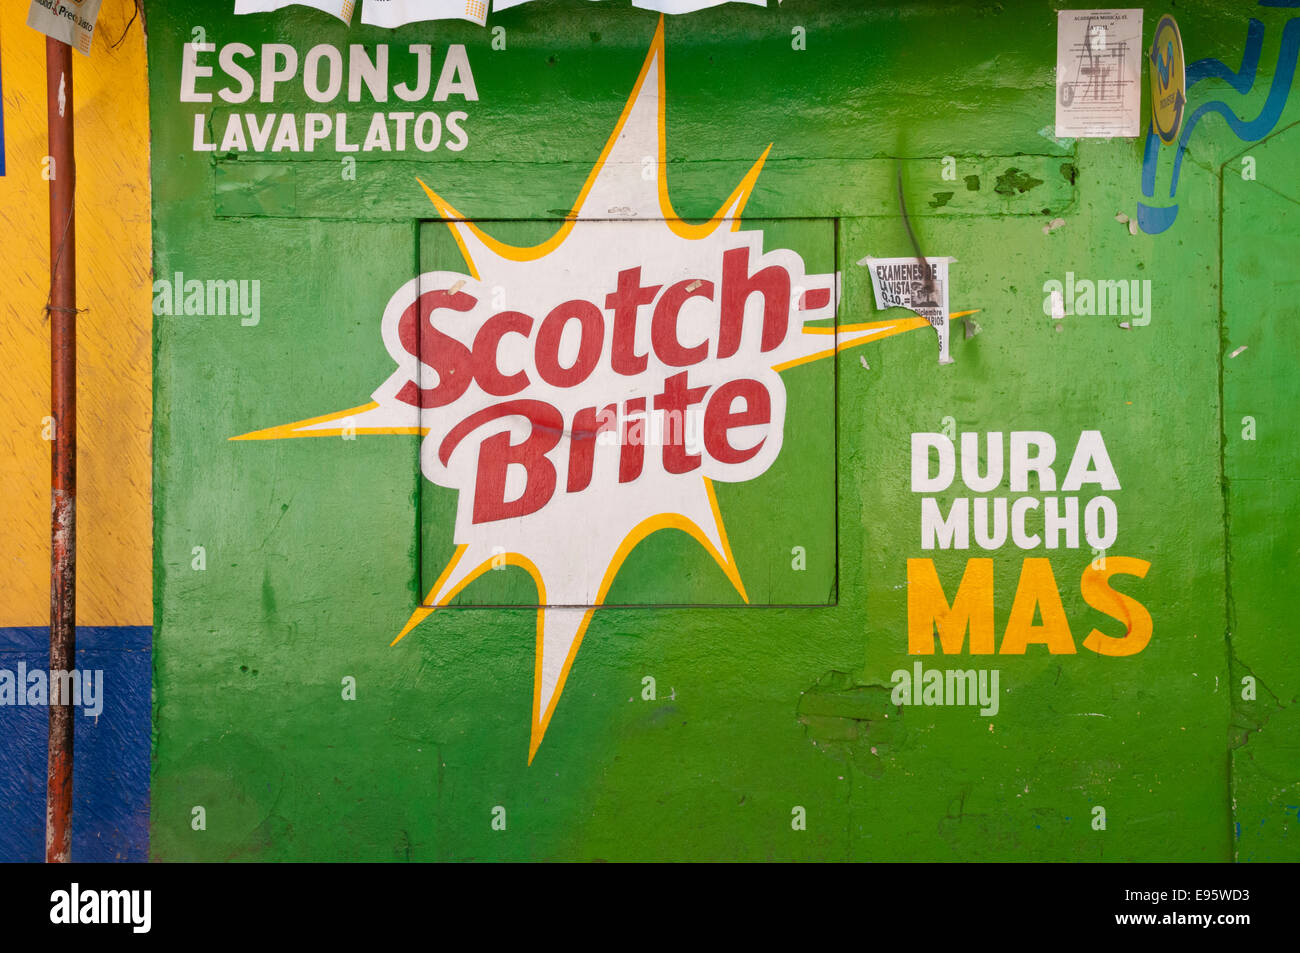 Scotch Brite, home cleaning products, advert painted on the side of a building, Solola, Guatemala - Stock Image